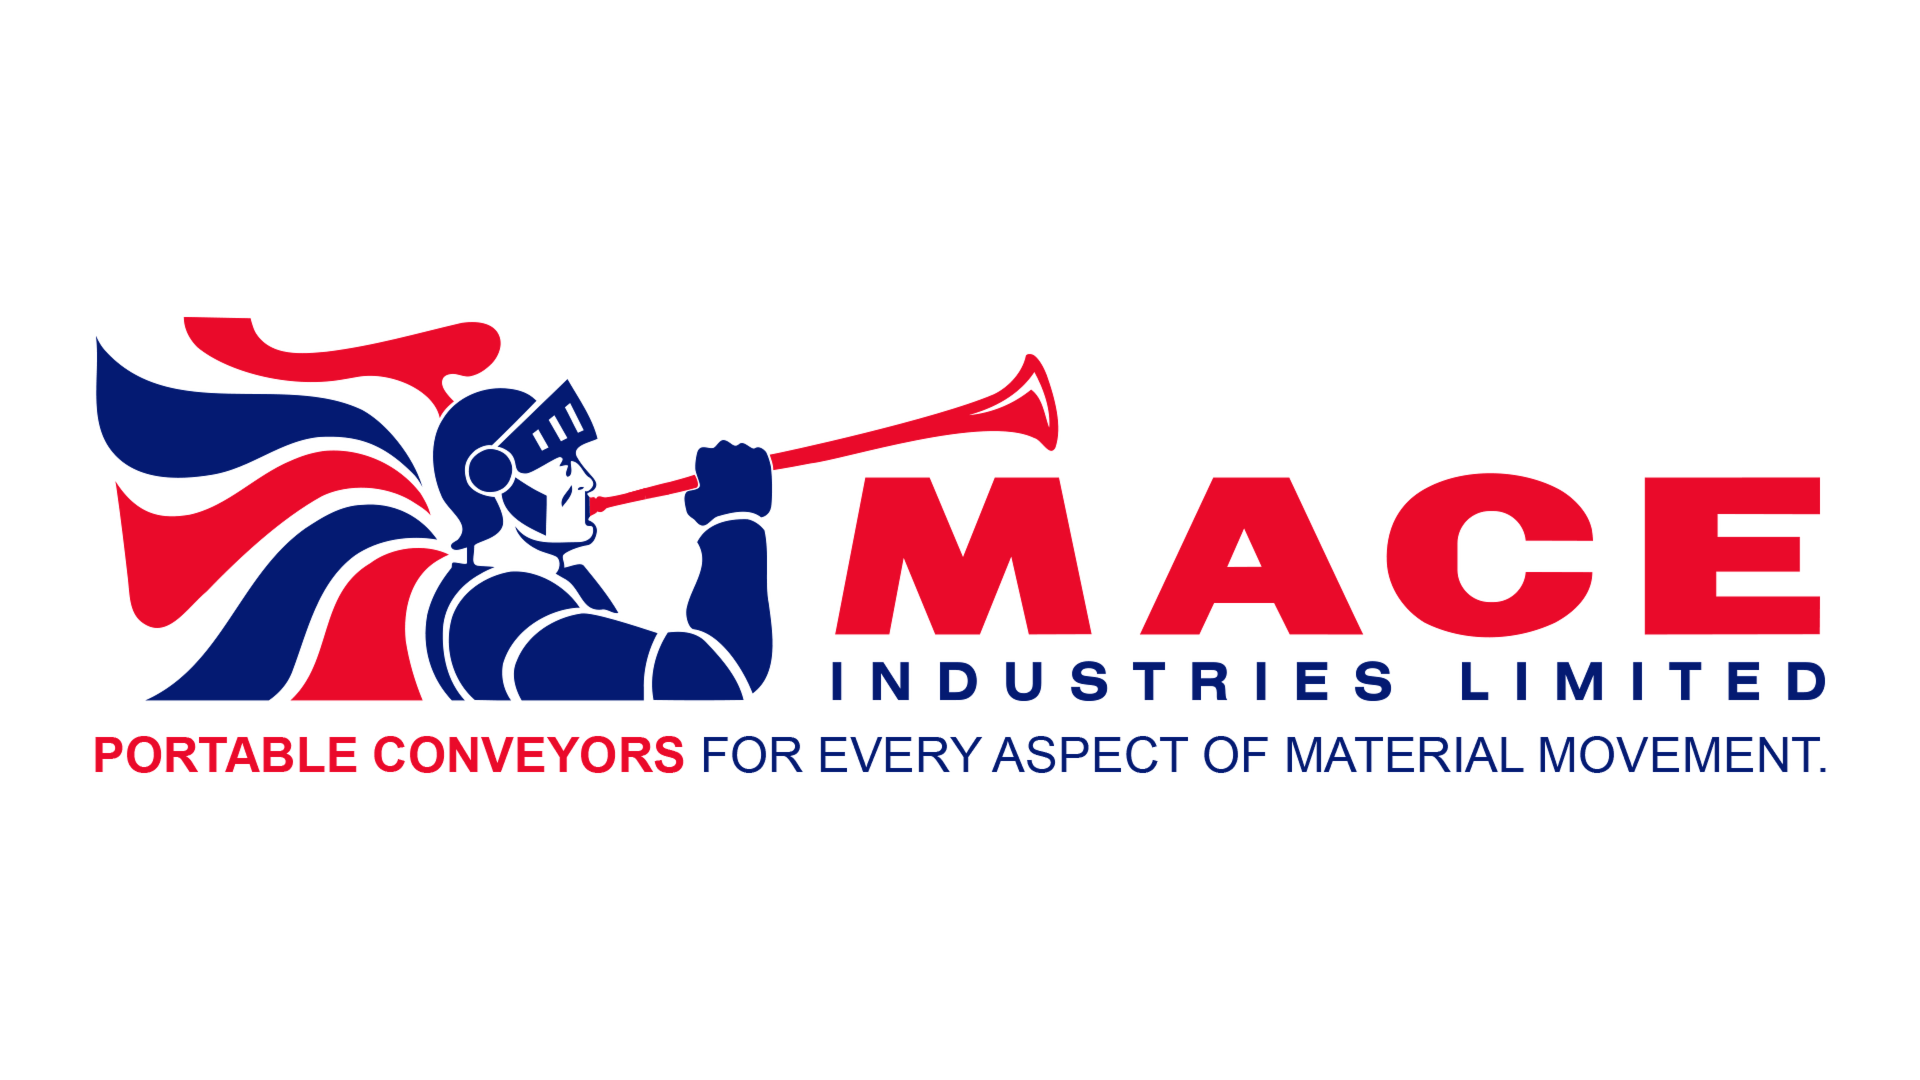 Mace Industries Ltd